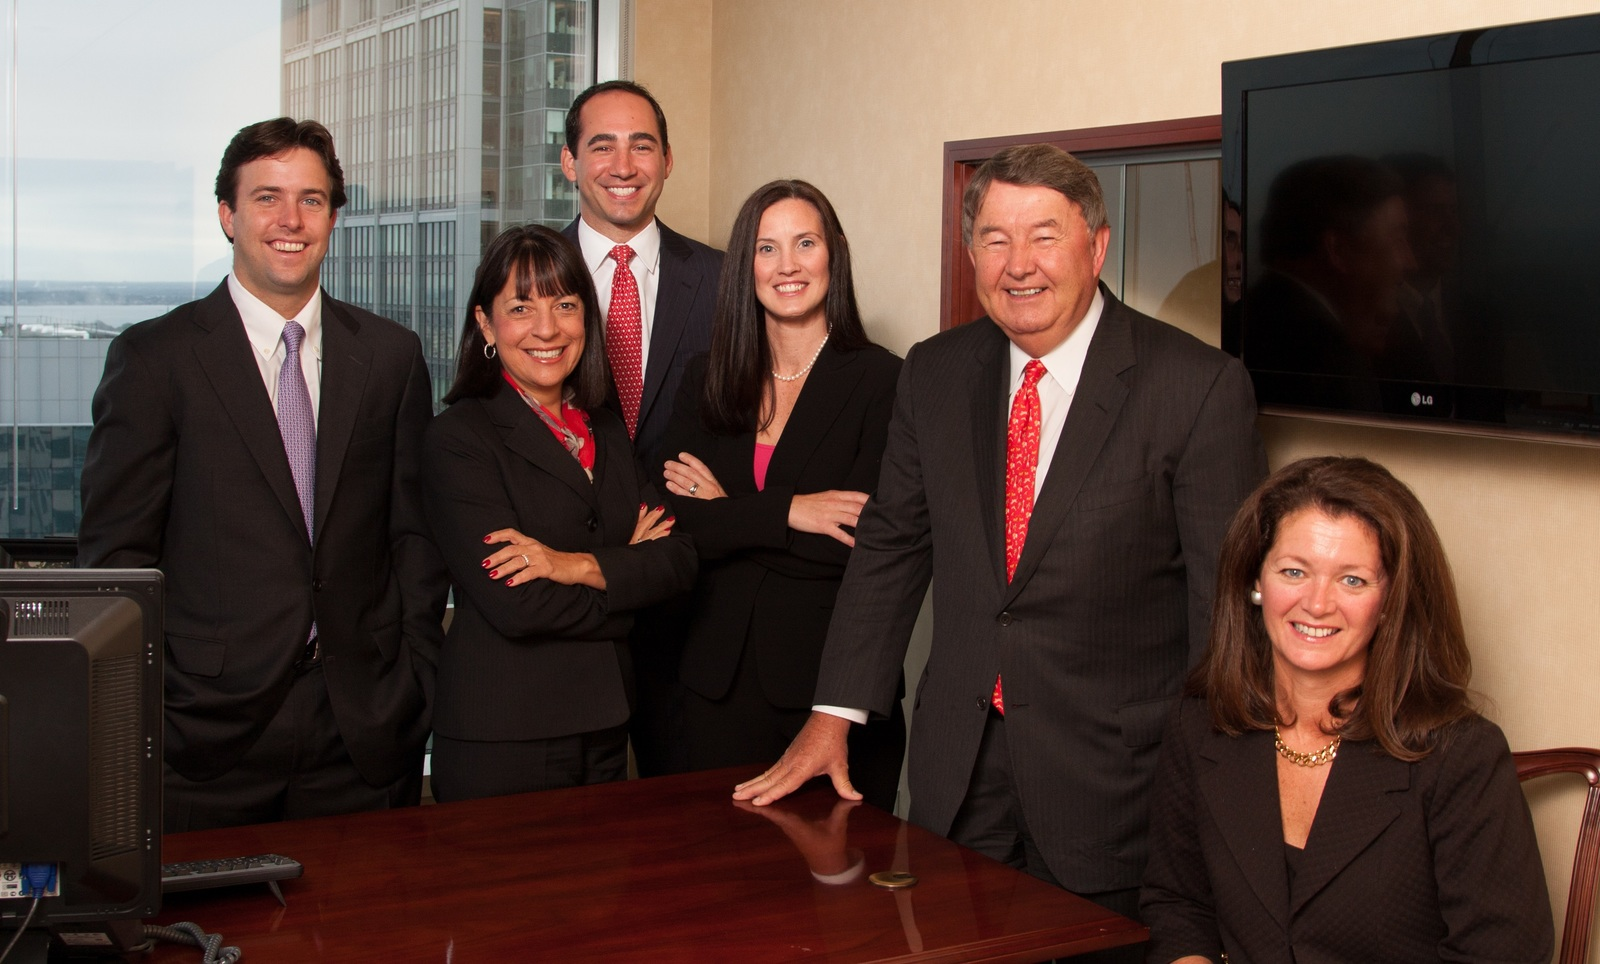 The Connolly Principe Group | Boston, MA | Morgan Stanley